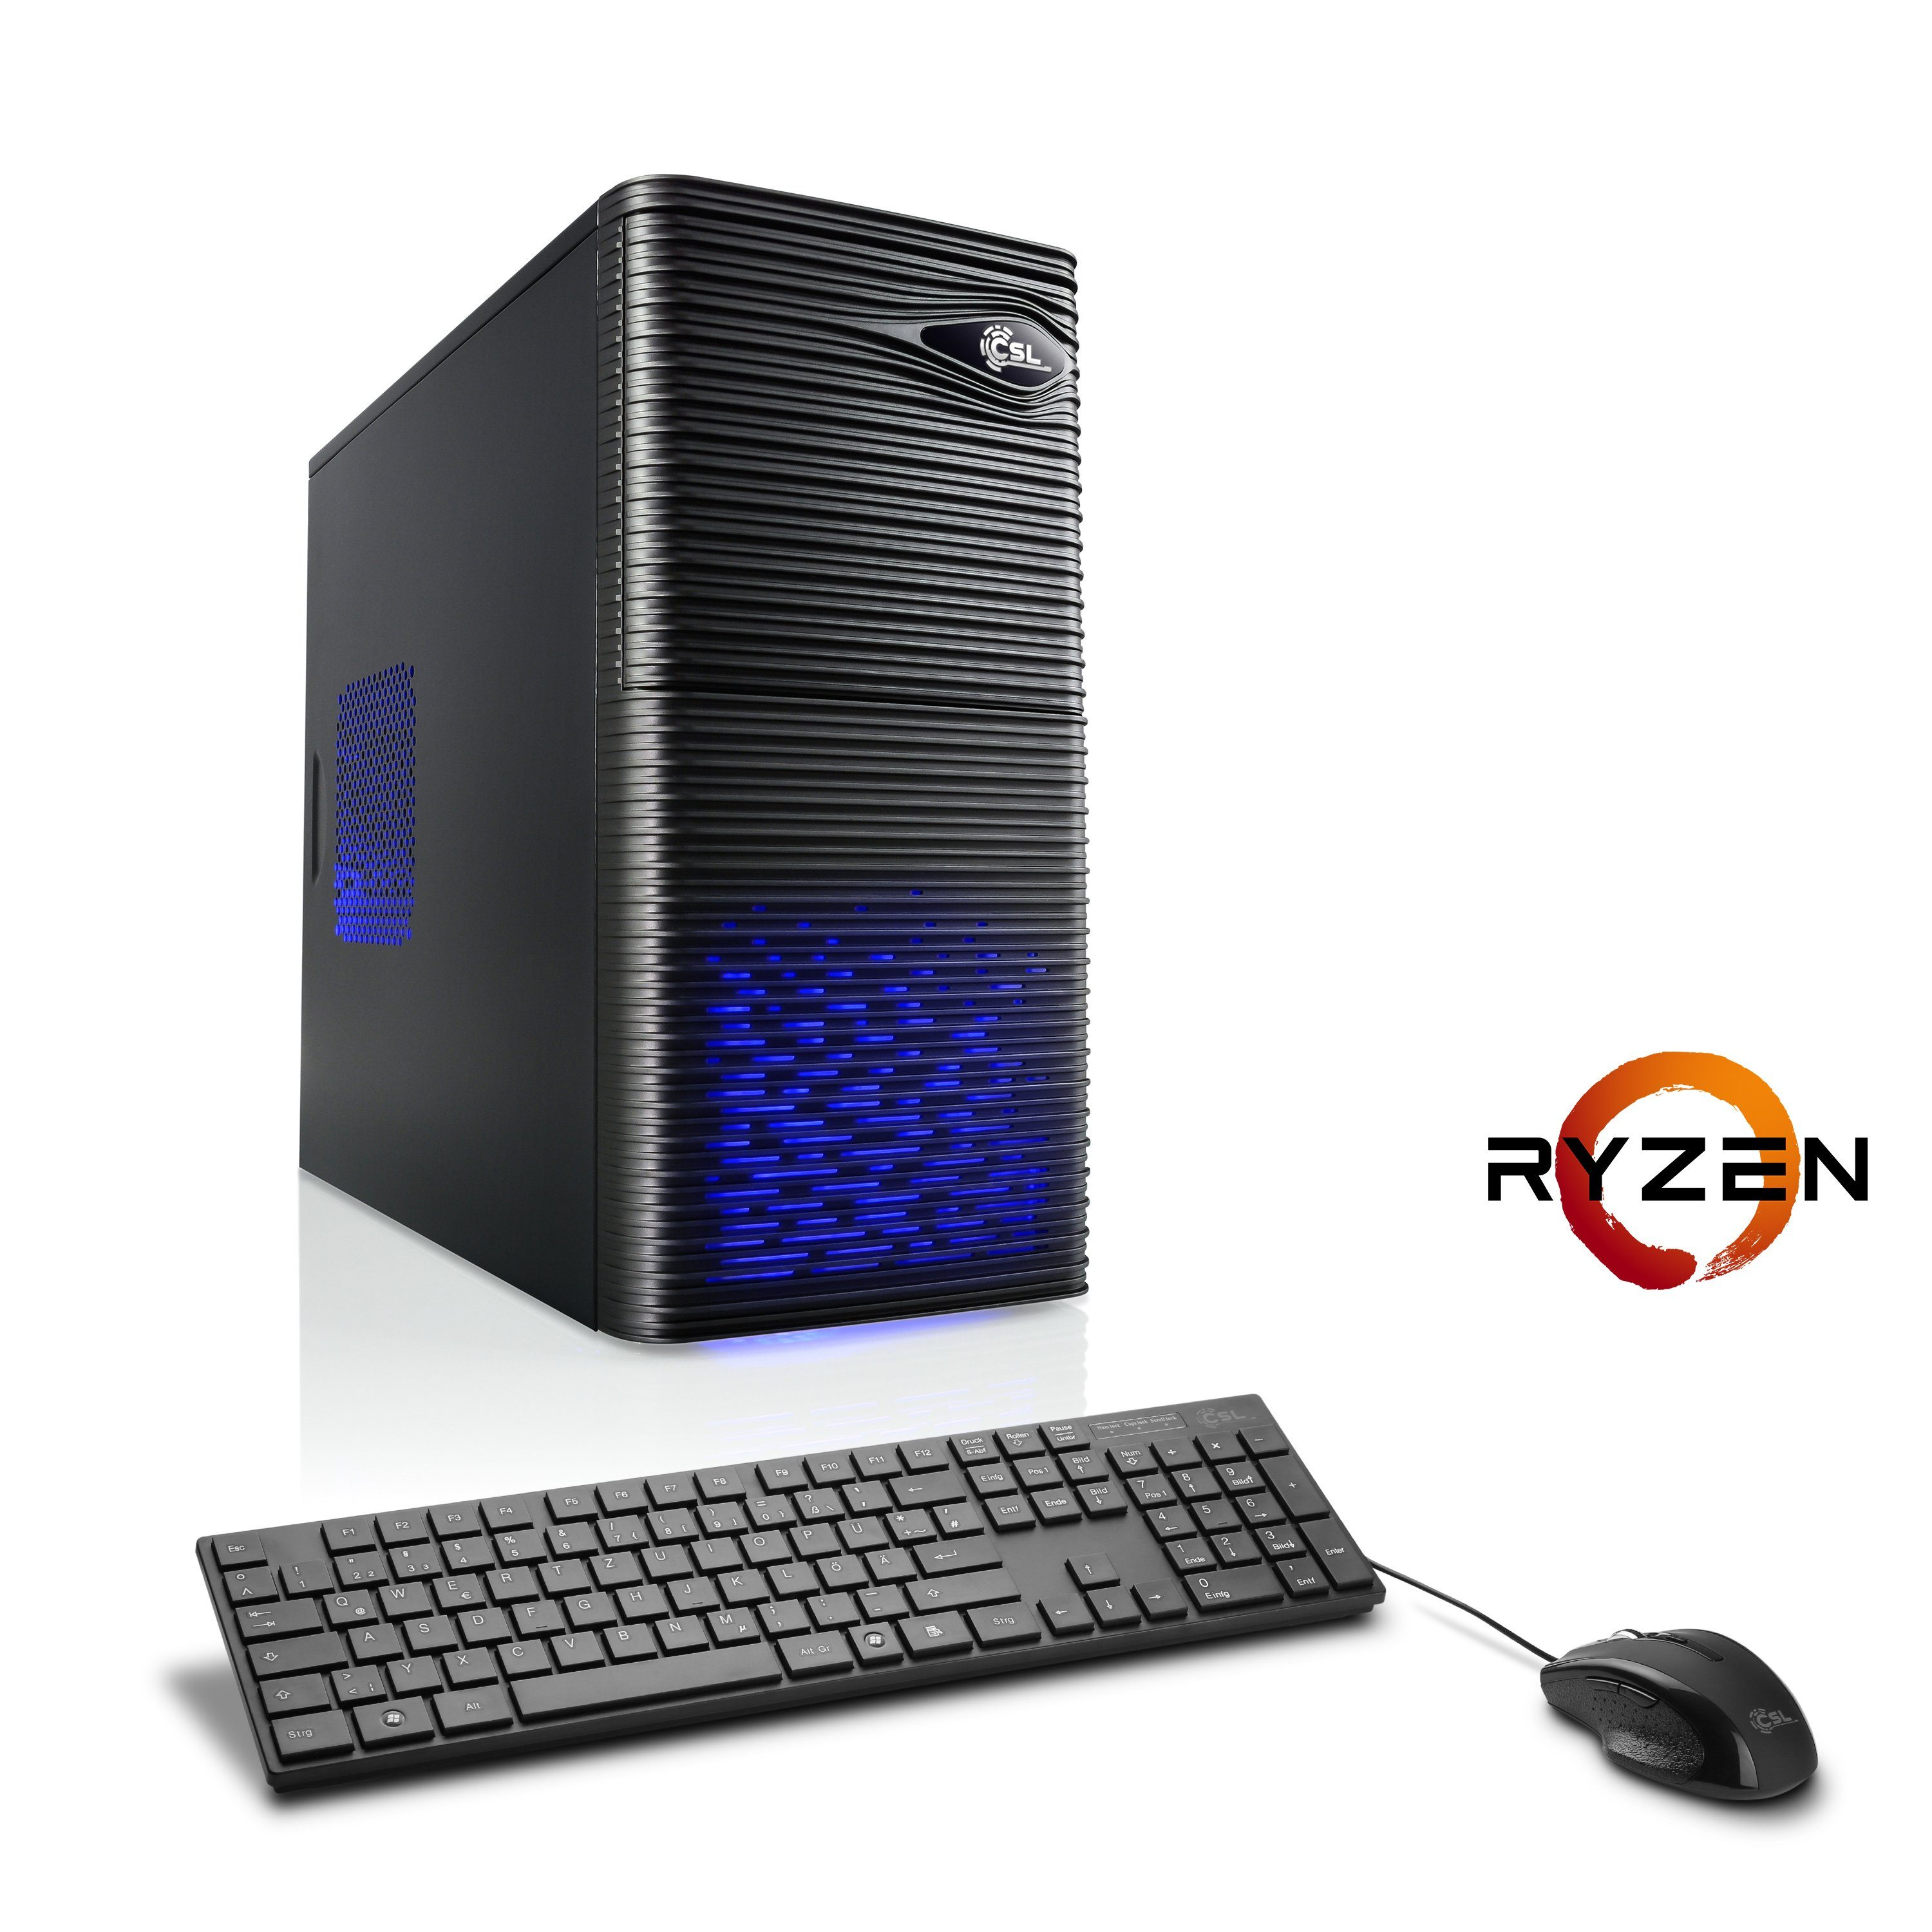 CSL Gaming PC | Ryzen 5 1500X | GeForce GTX 1050 | 8 GB DDR4 | SSD »Sprint T8873 Windows 10 Home«